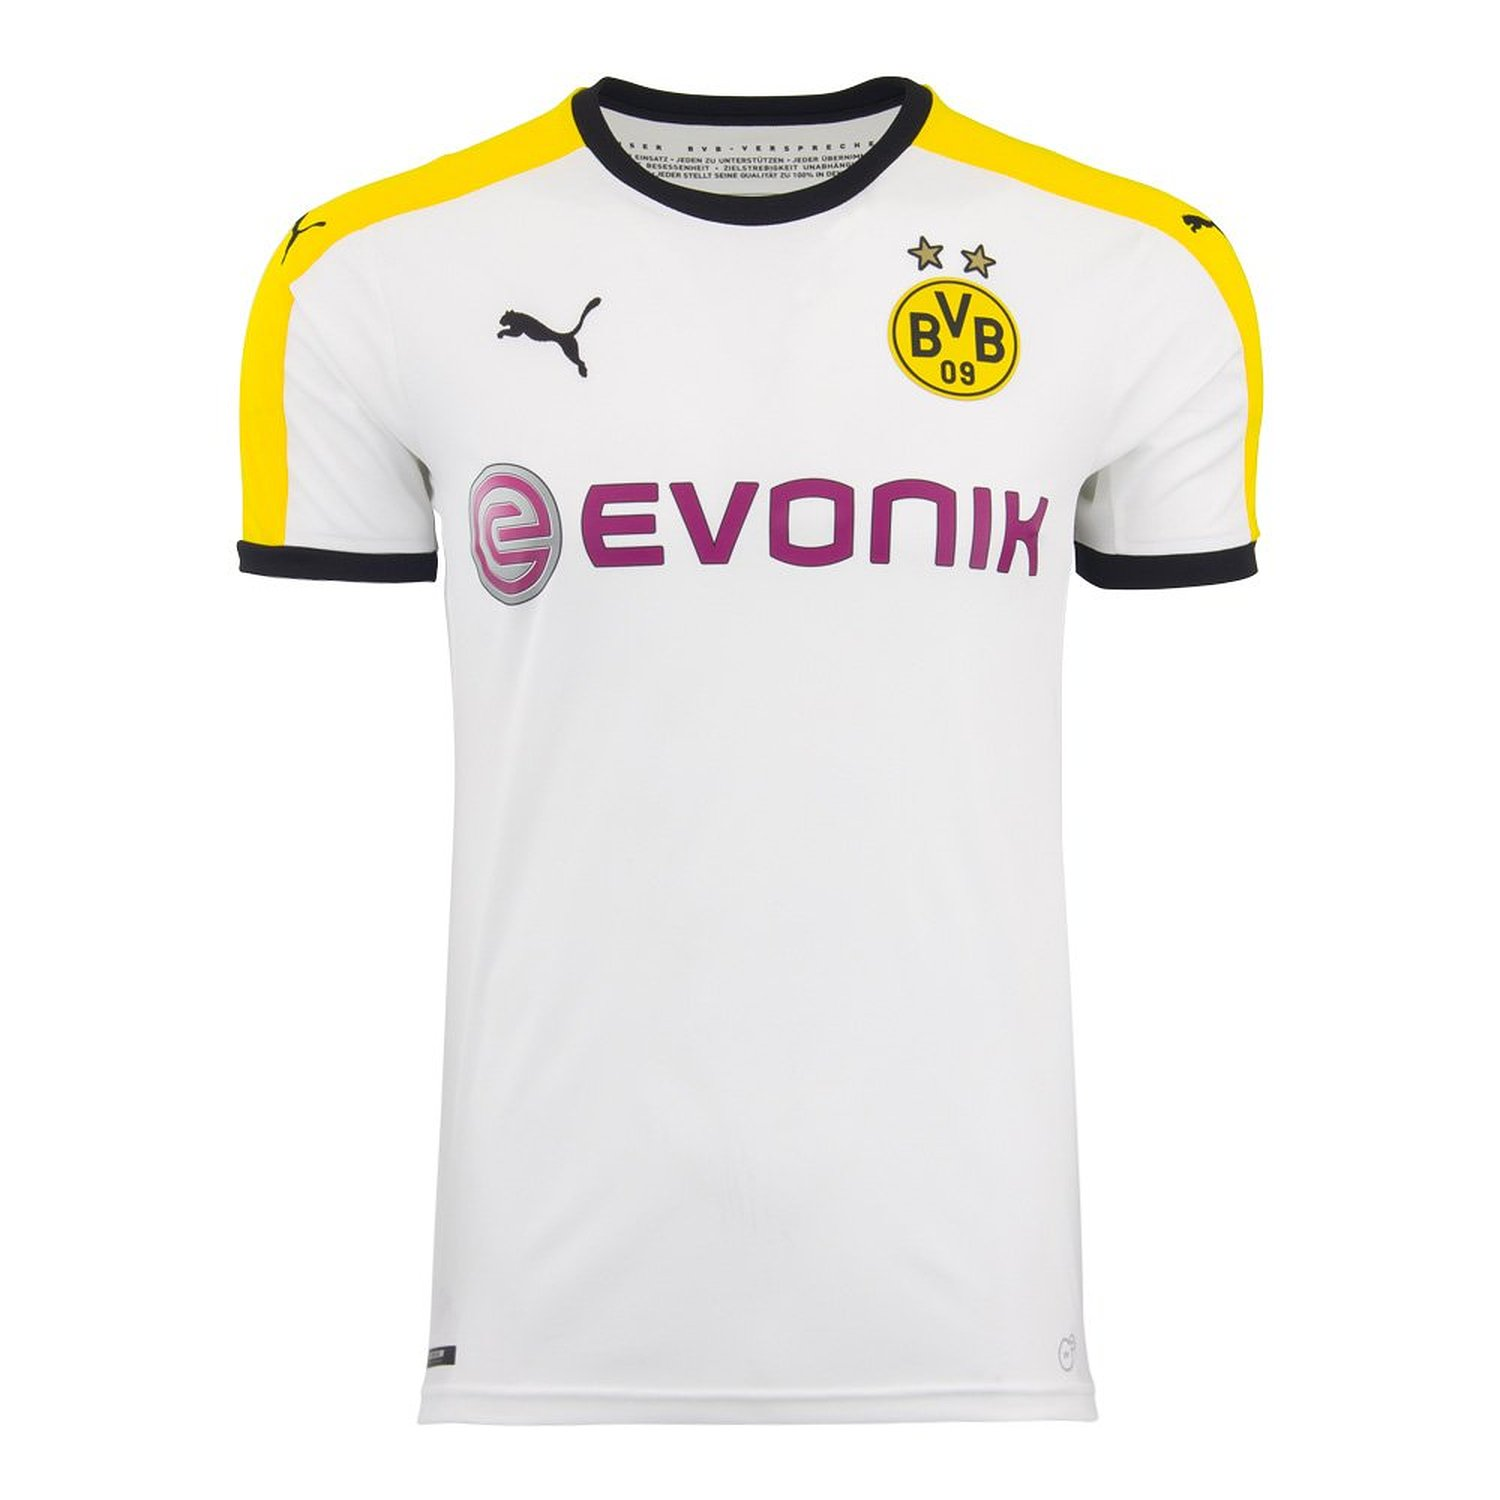 7c4aec2ee02 Buy Puma BVB Borussia Dortmund Men Third Jersey in Cheap Price on  m.alibaba.com